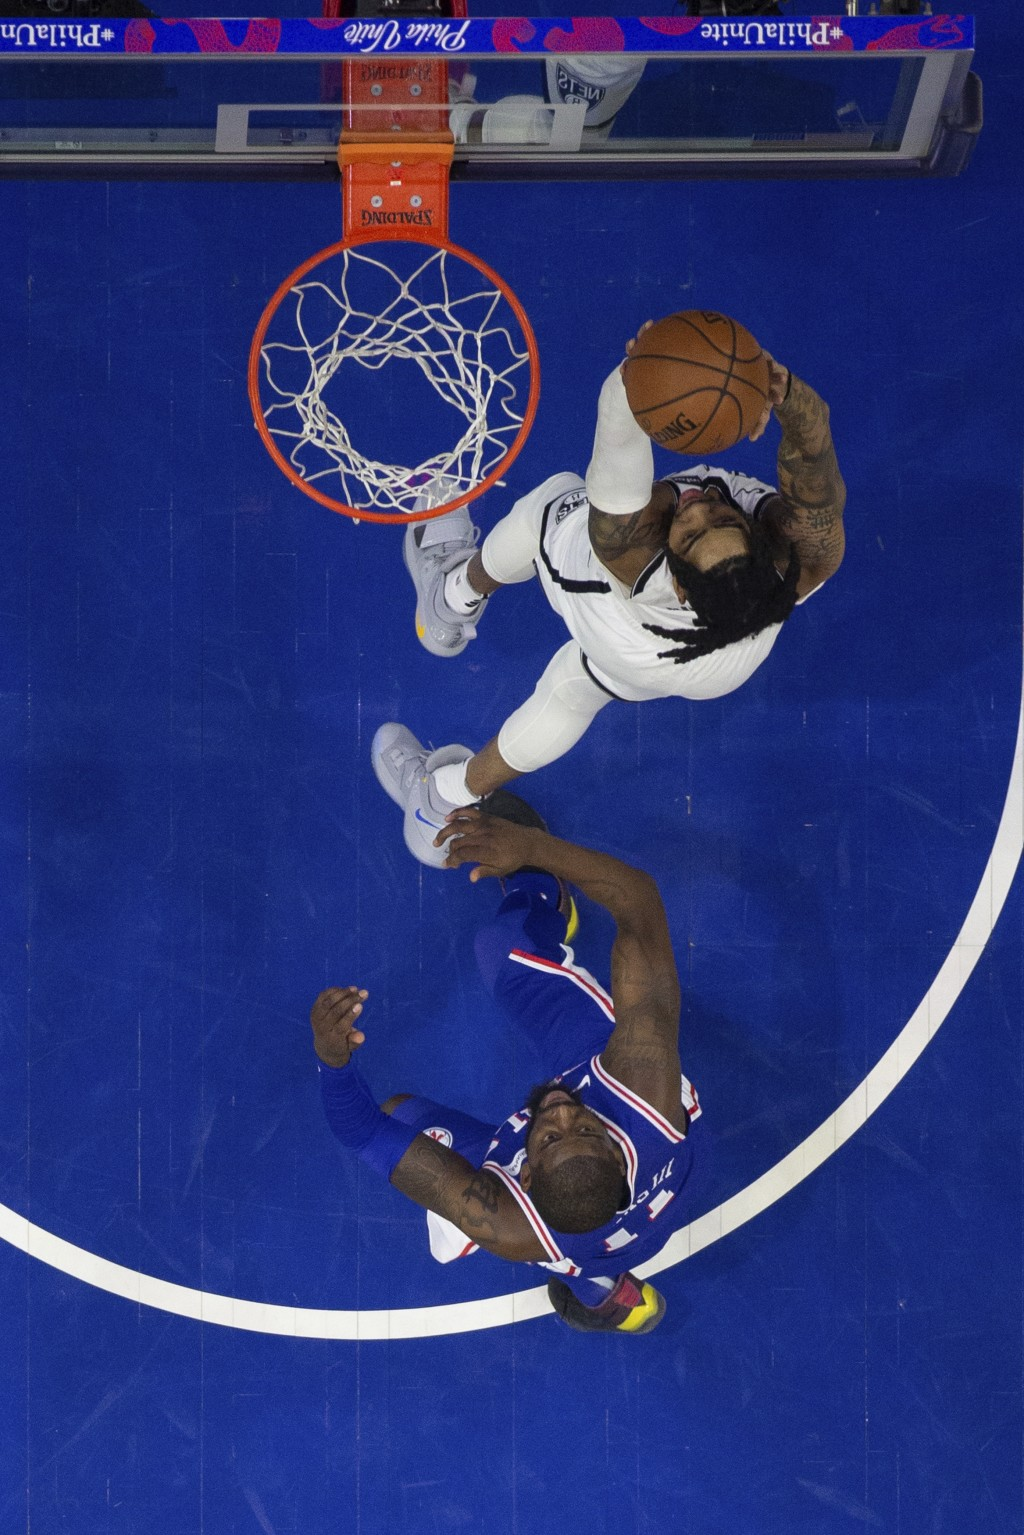 Brooklyn Nets' D'Angelo Russell, right, goes up for the shot against Philadelphia 76ers' James Ennis III, left, during the first half in Game 2 of a f